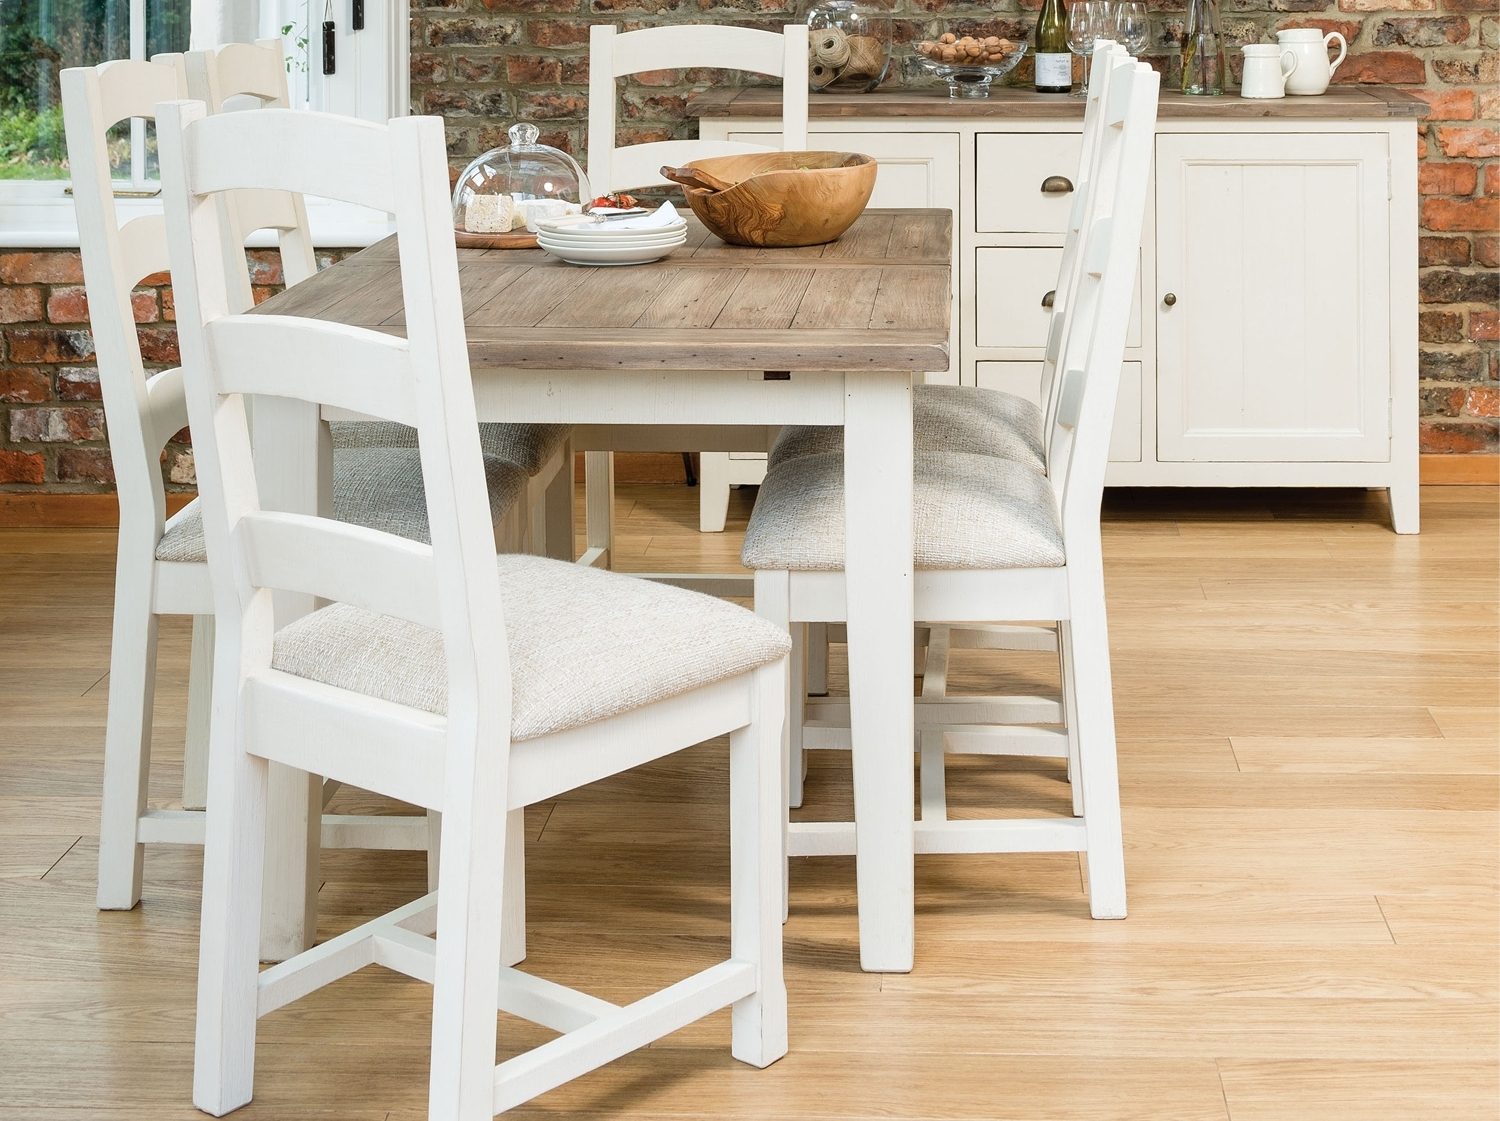 French Country 140Cm Extending Dining Table From Dansk Regarding Favorite French Country Dining Tables (View 5 of 25)